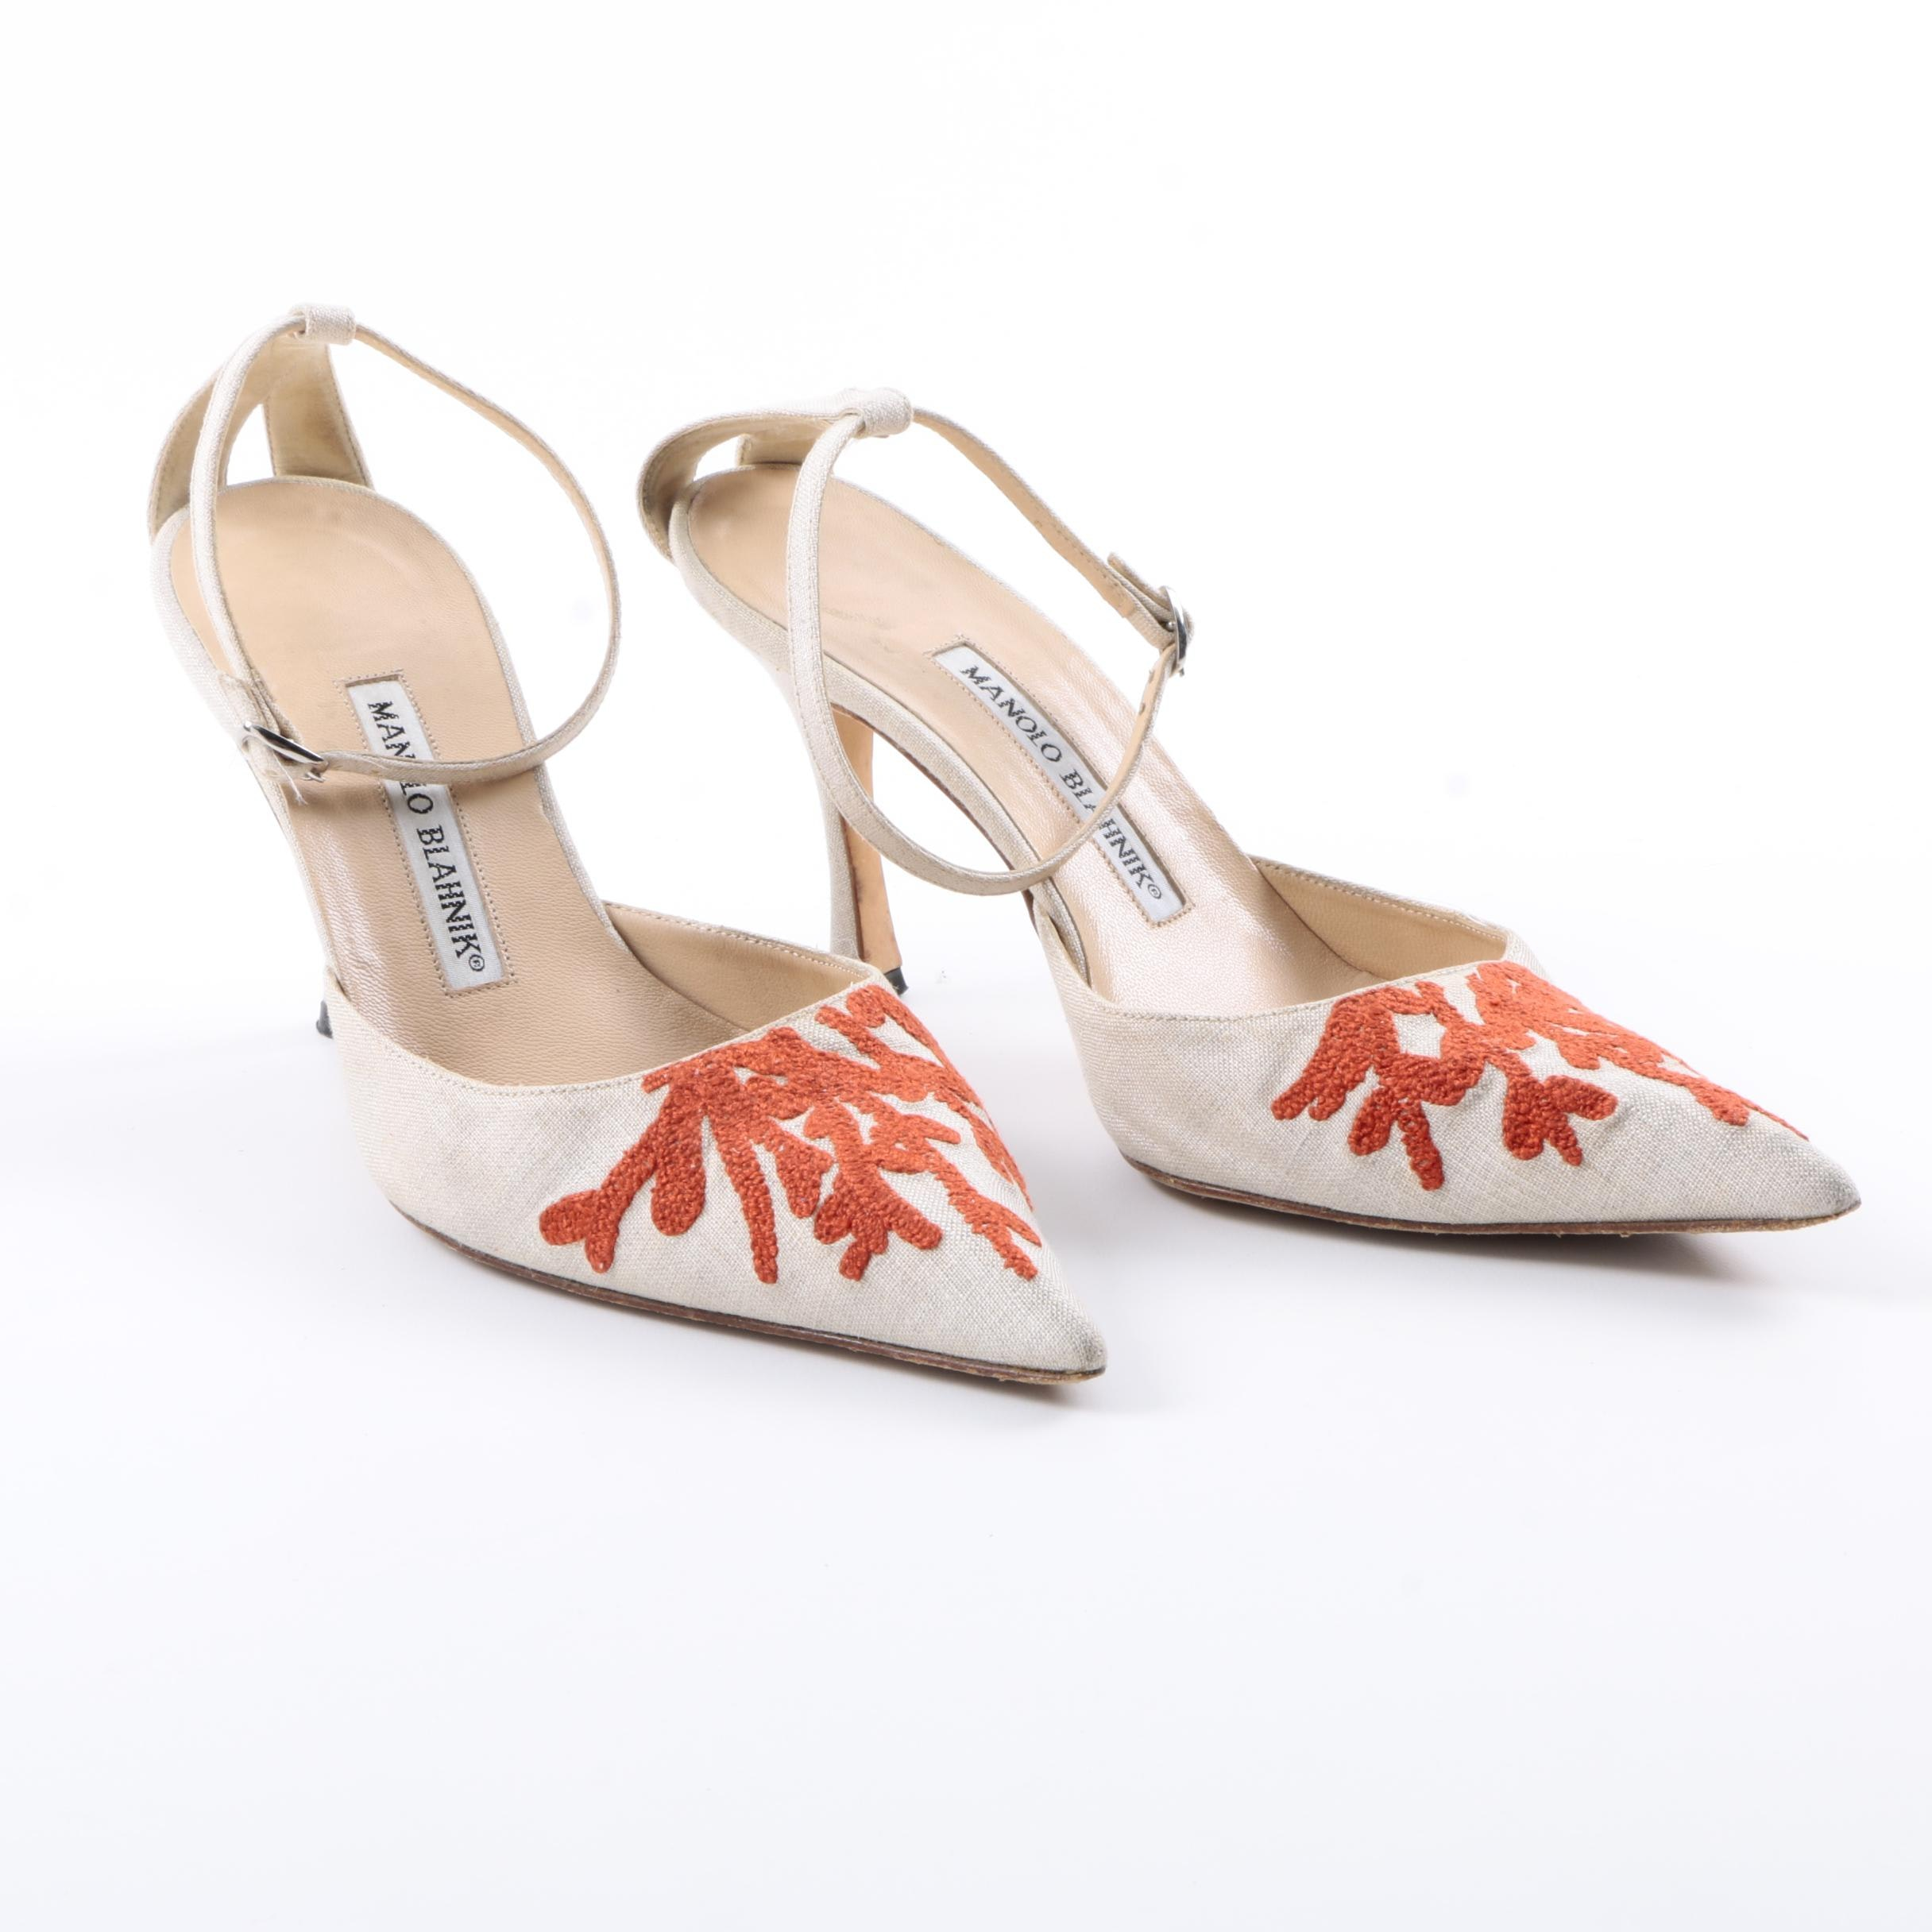 Manolo Blahnik Coral Embroidered Ankle Strap Heels